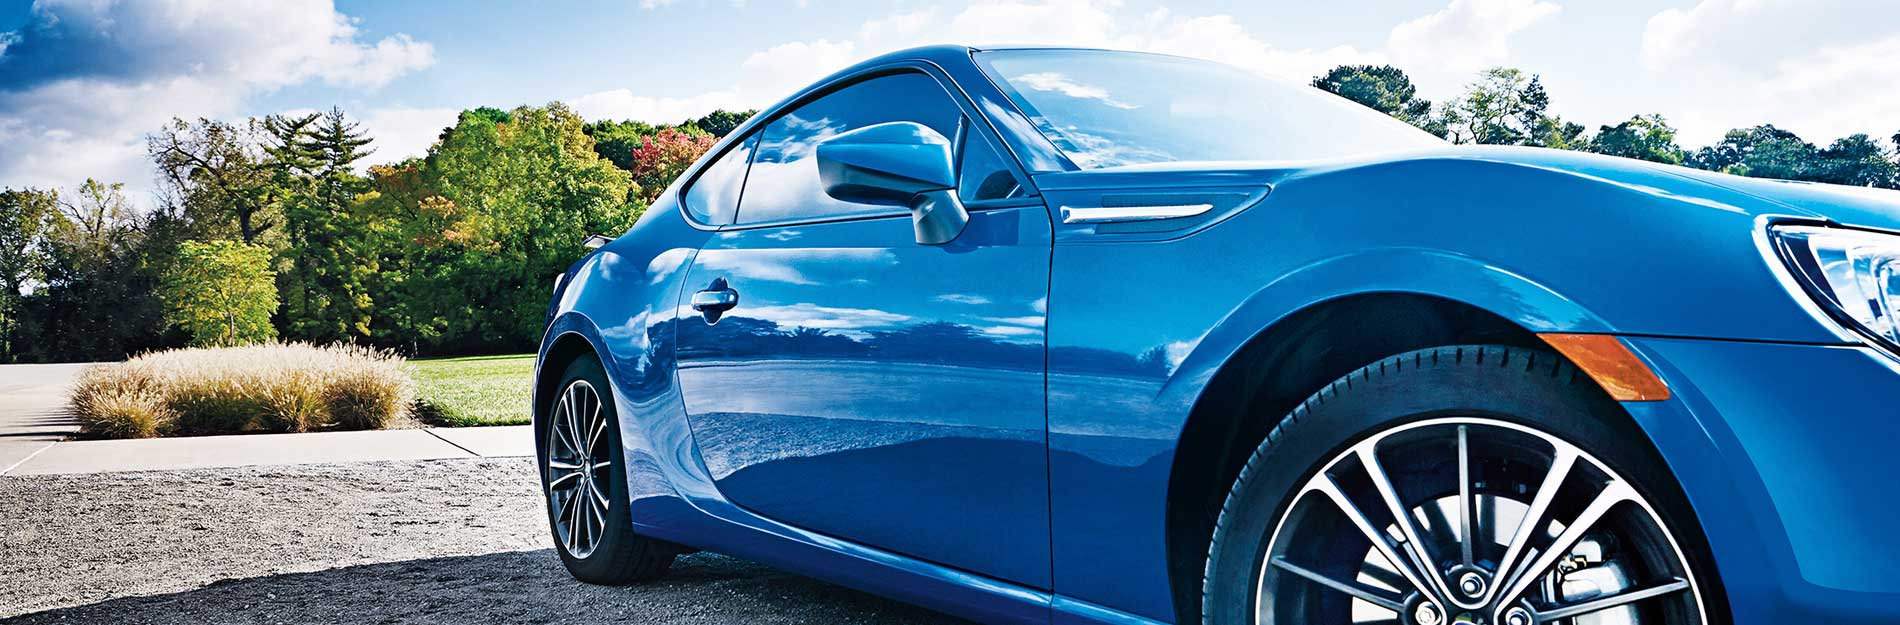 Window Tinting Services | Sanford, NC